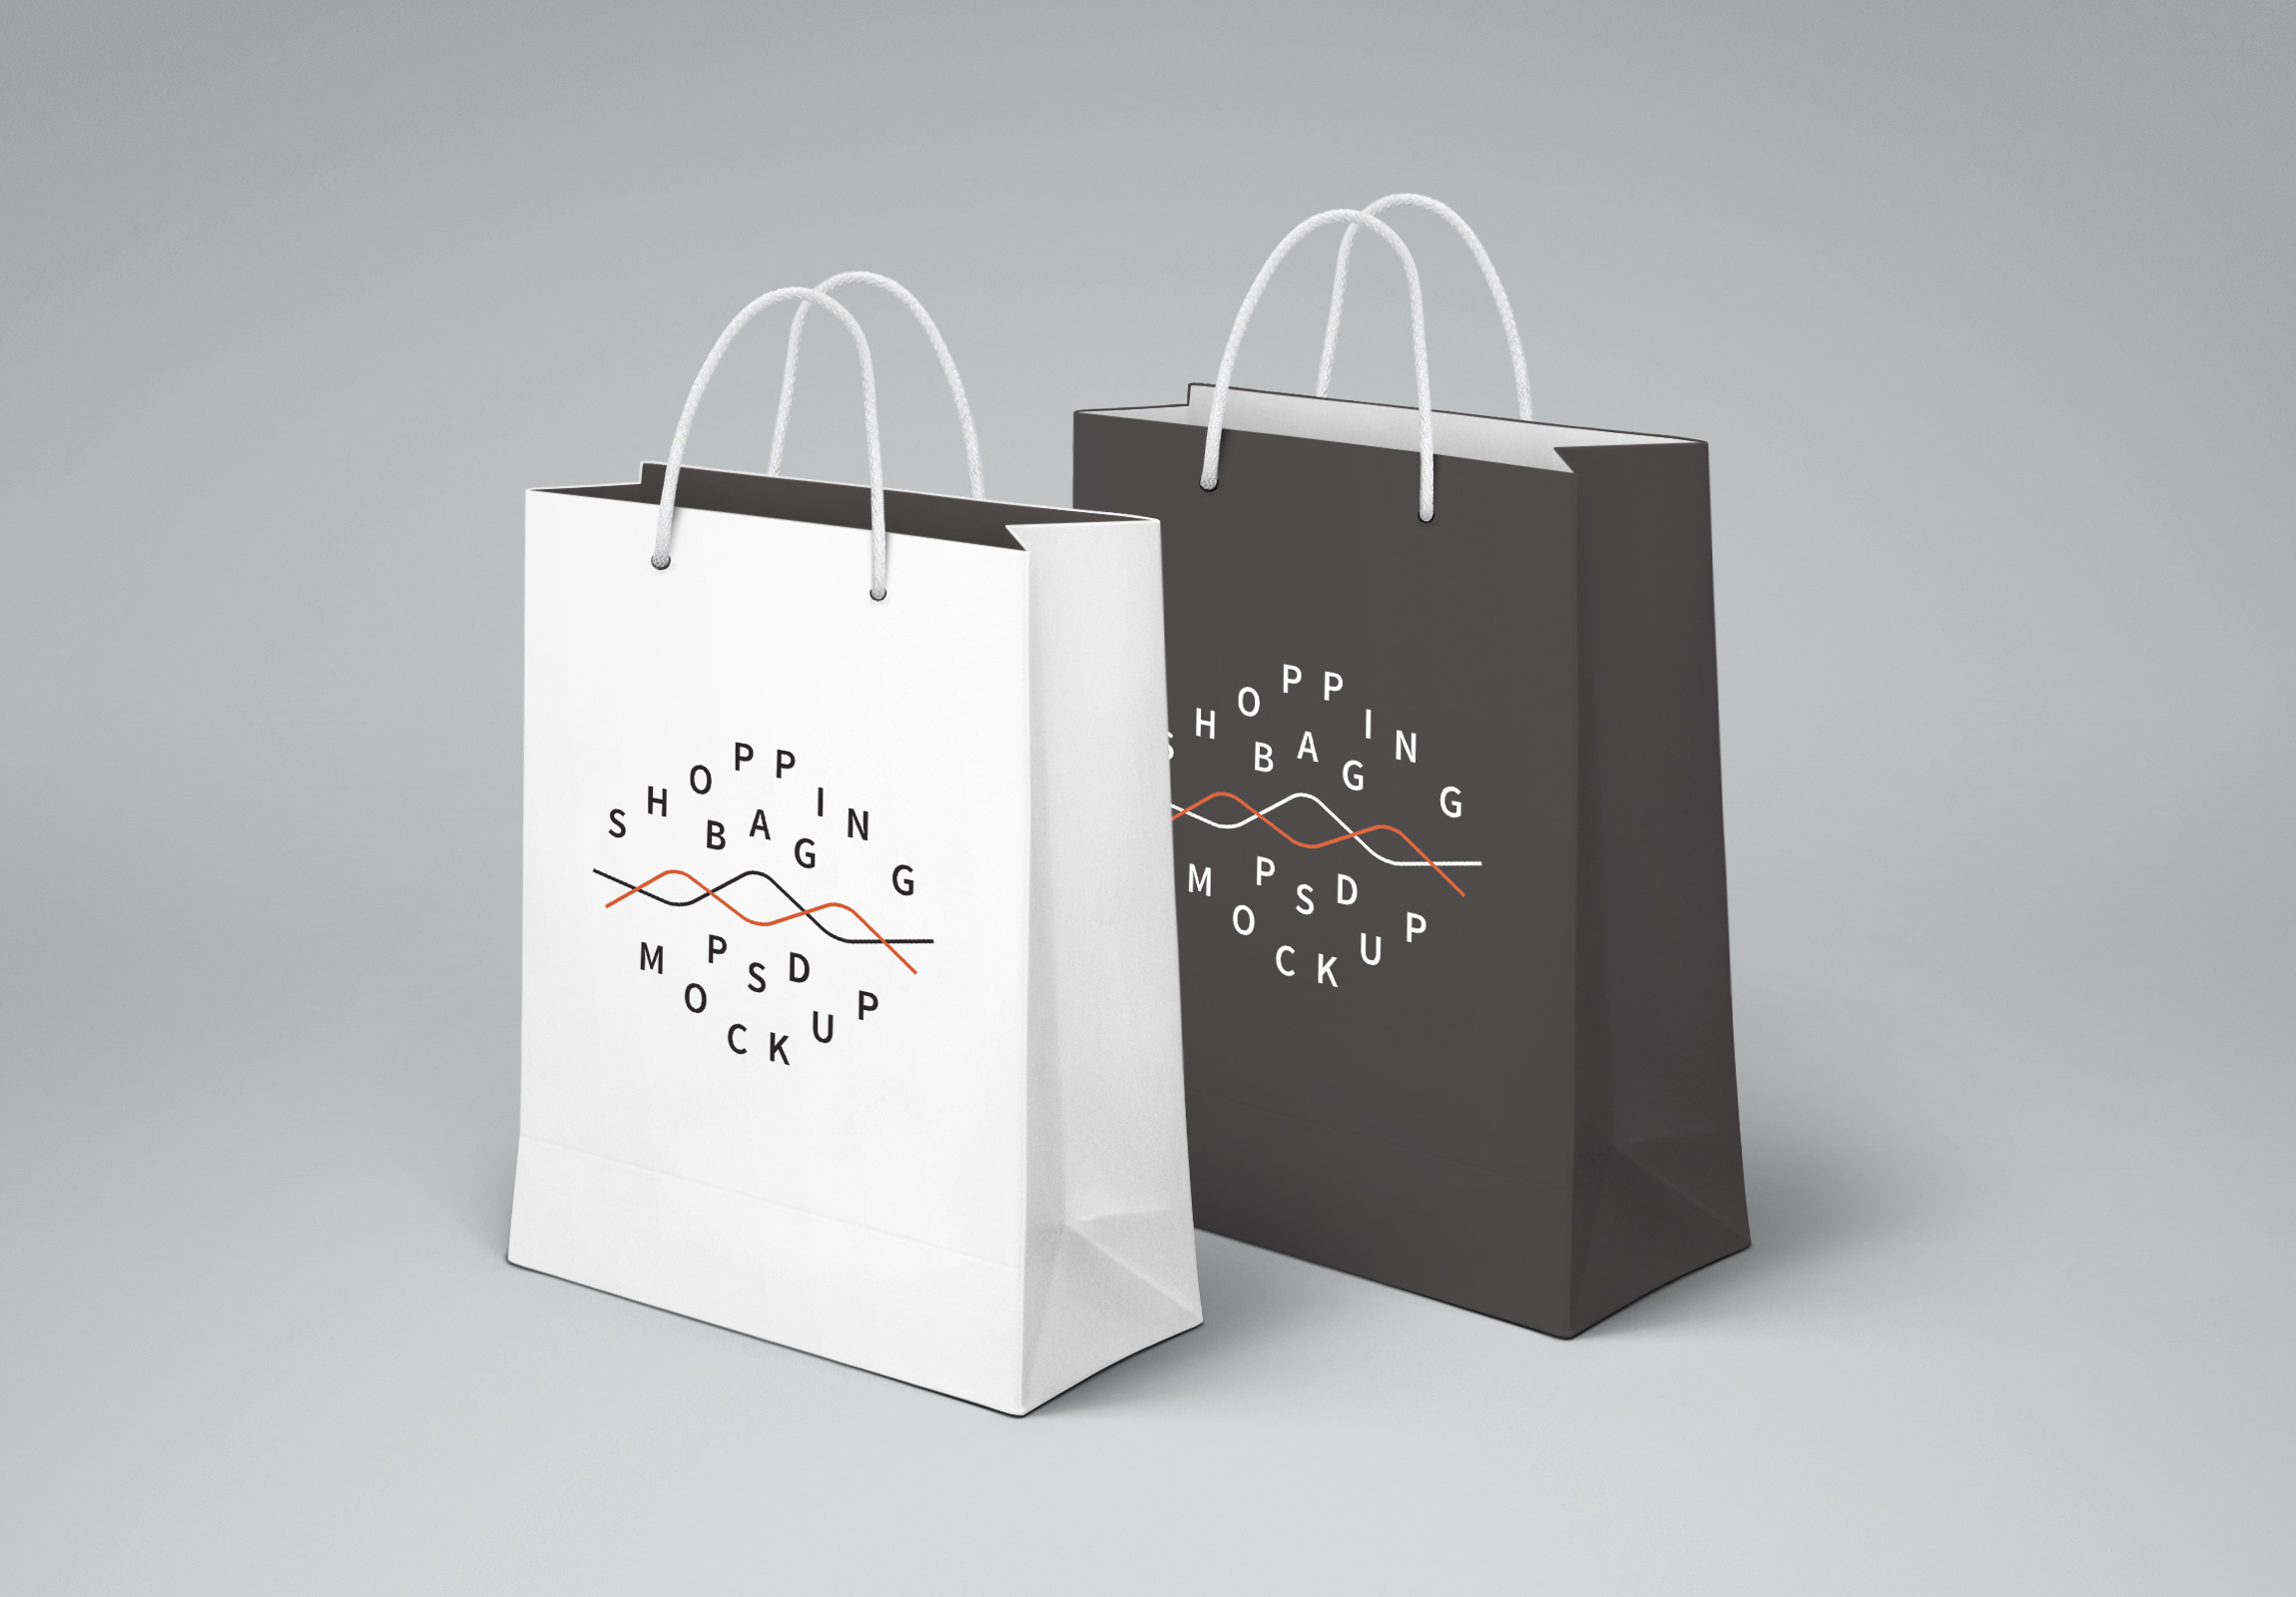 10 Mock Up Psd Shopping Bag Images